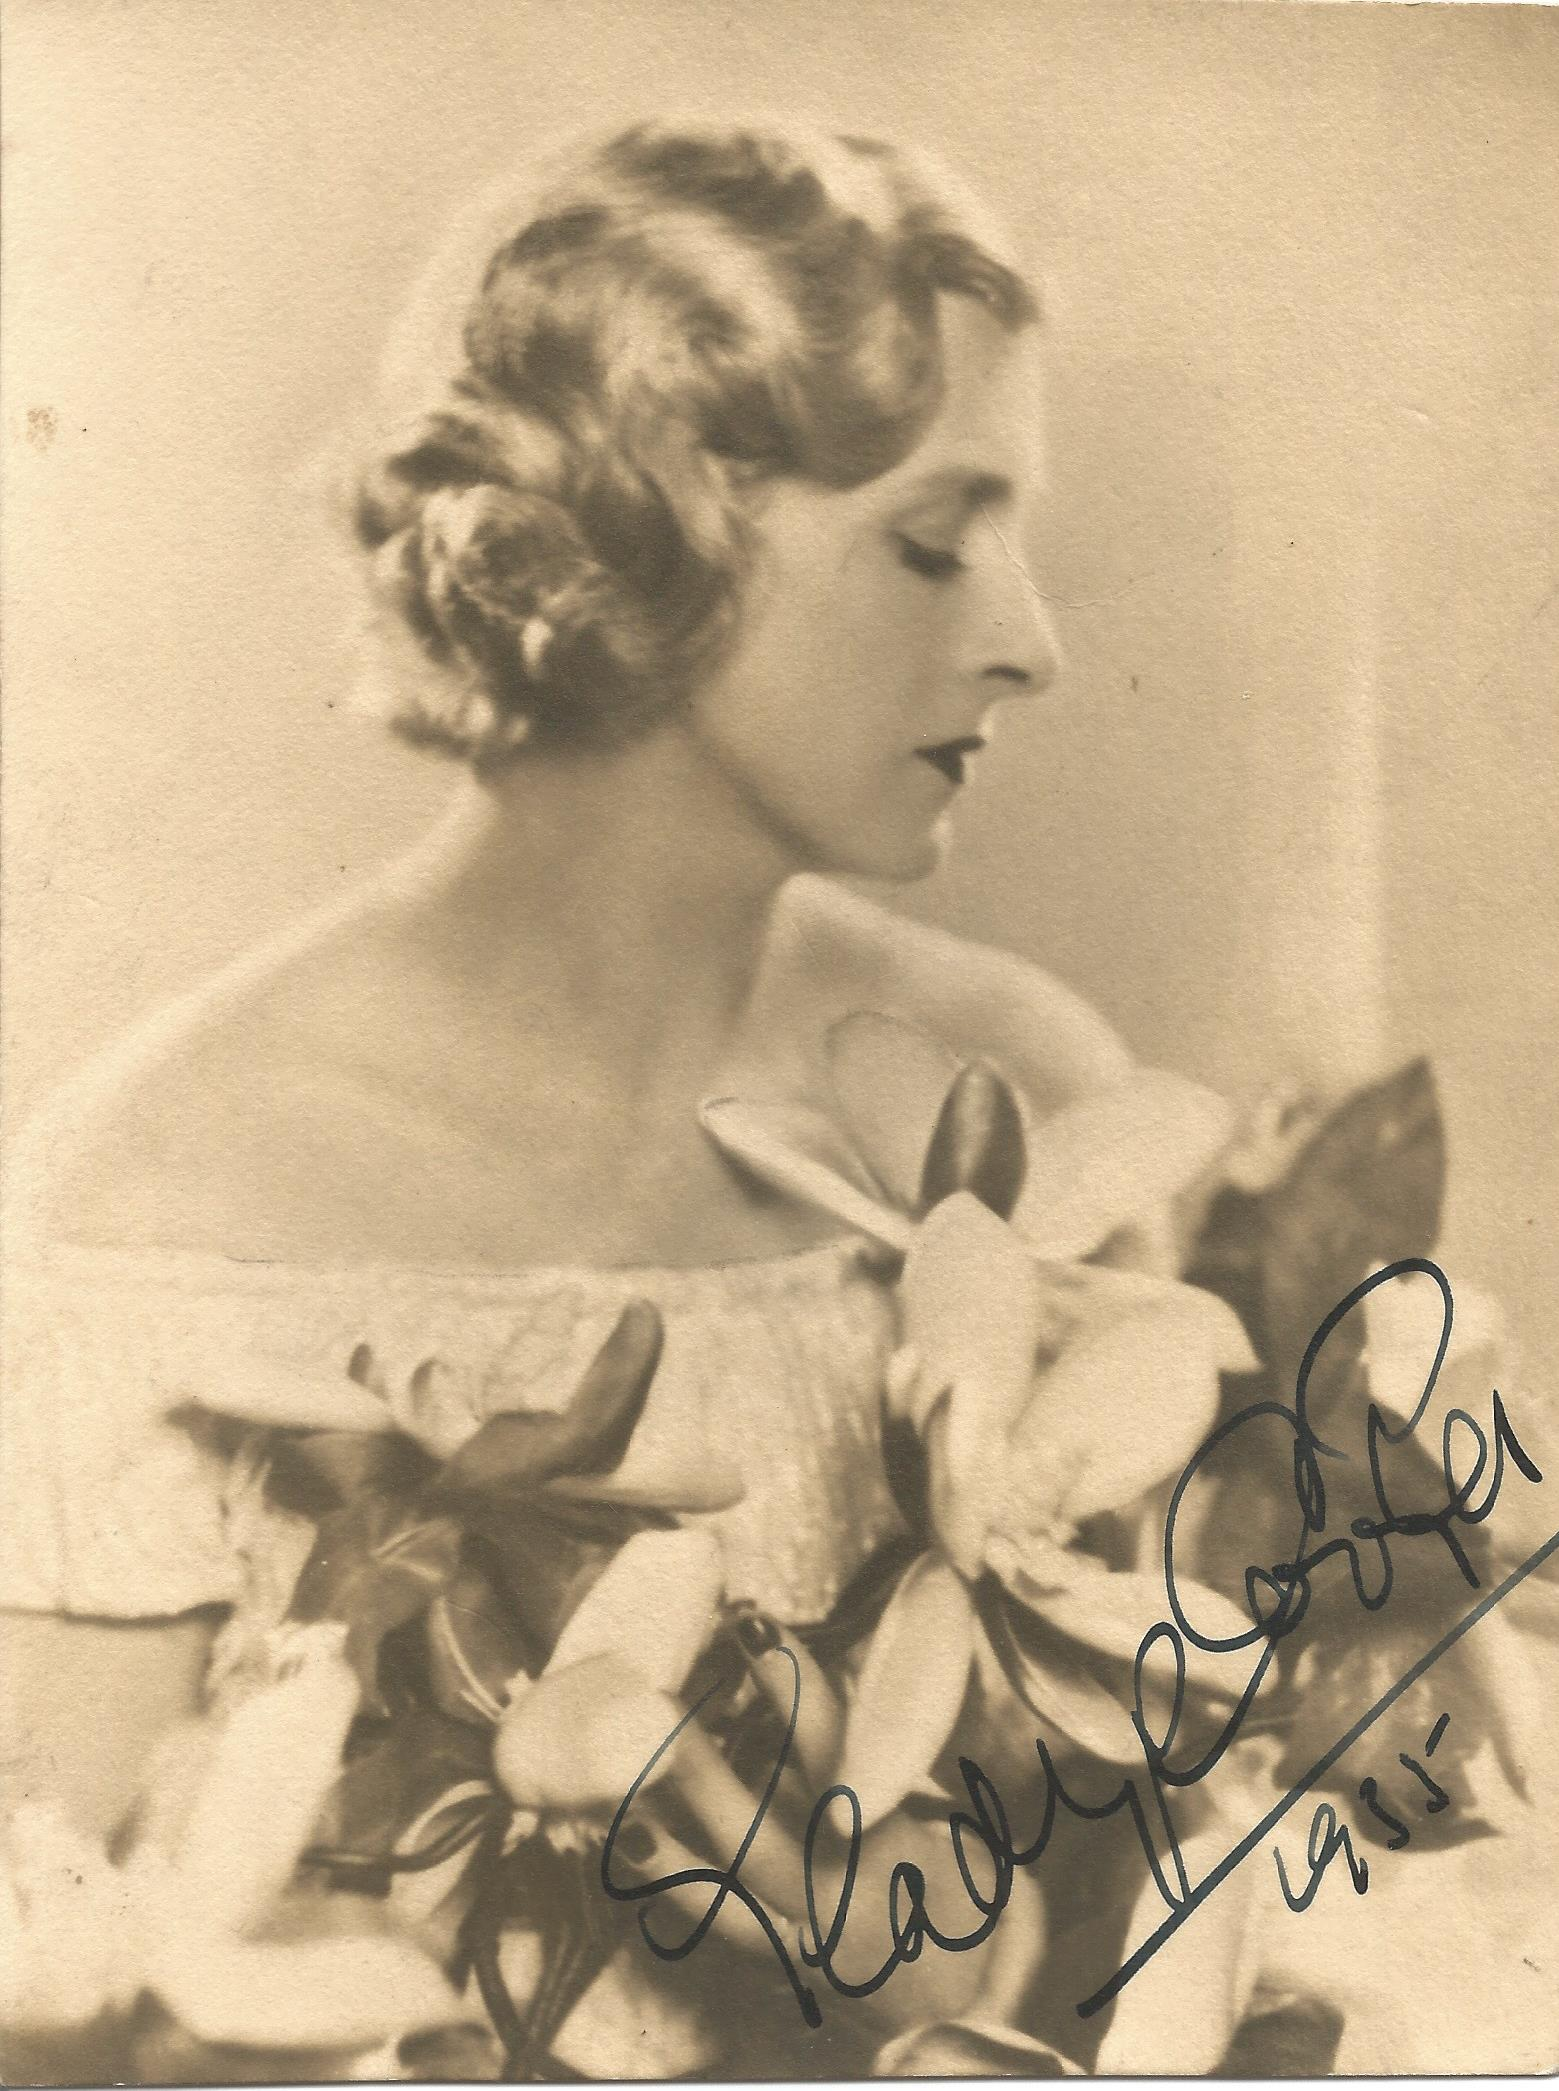 Actress Gladys Cooper vintage black and white 7x5 photo signed and dated 1935. Dame Gladys Constance